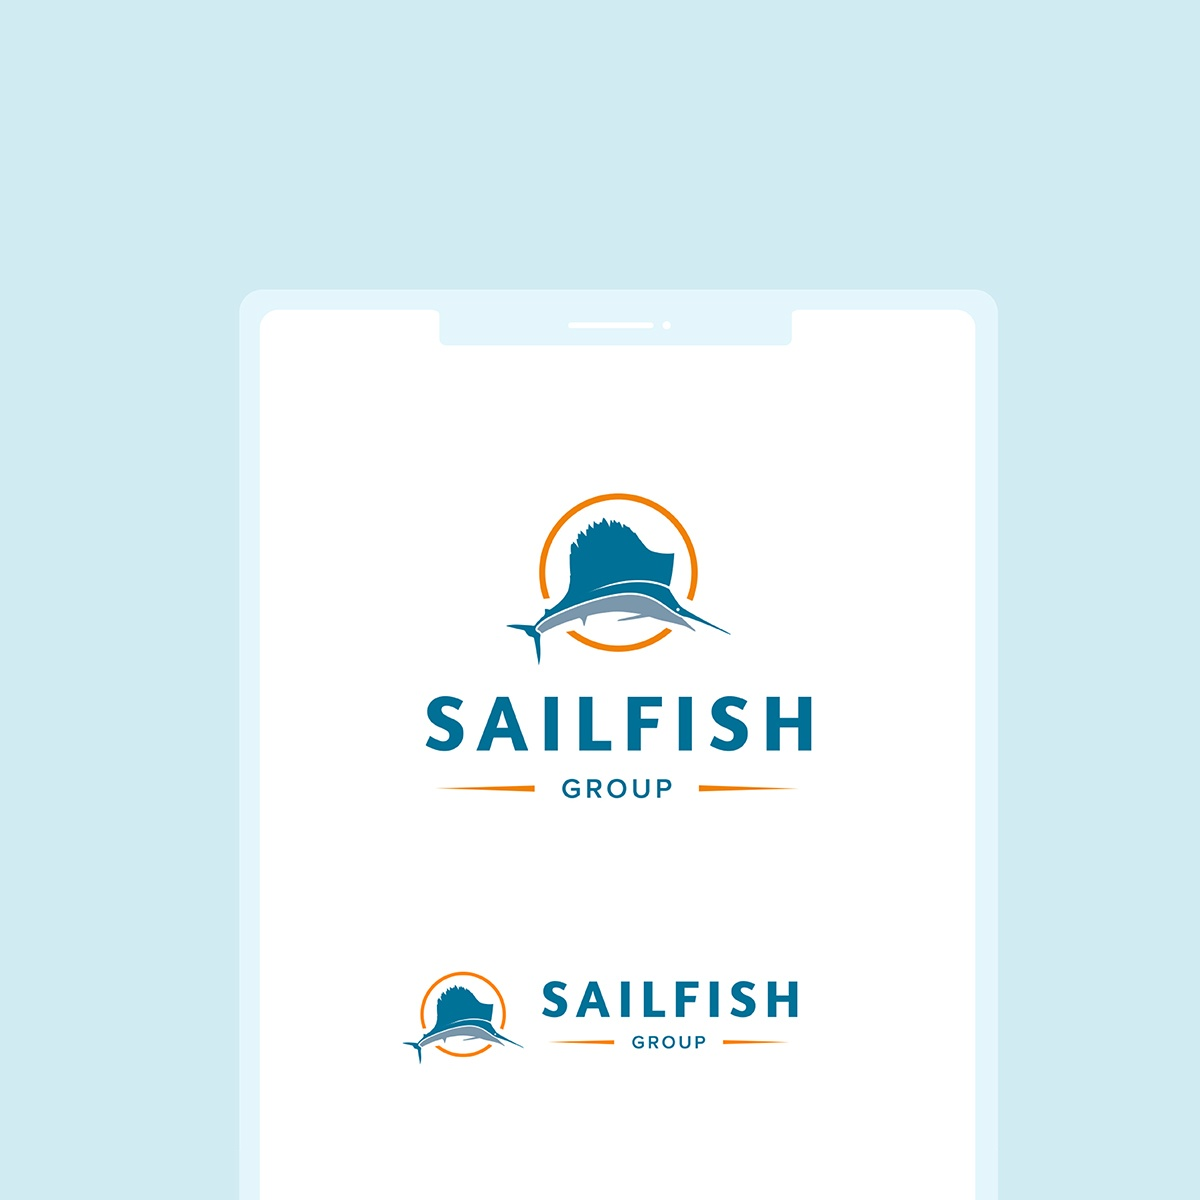 An image of both the vertical and horizontal layouts of the Sailfish Group's logo